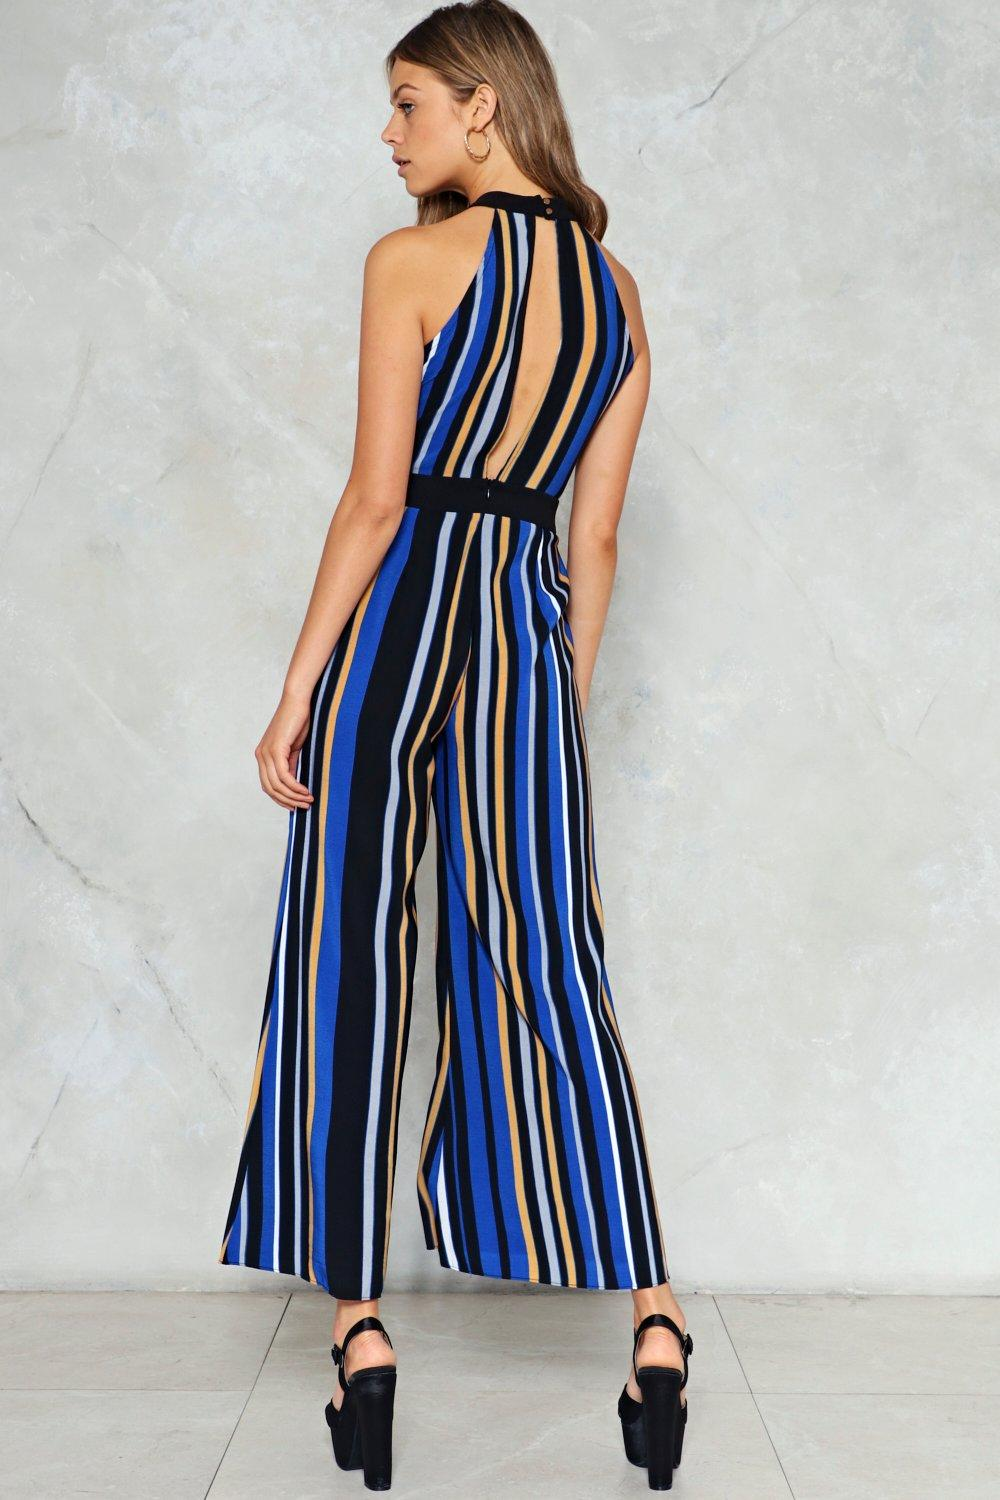 53692e0b811a Straight A s Stripe Jumpsuit. Hover to zoom